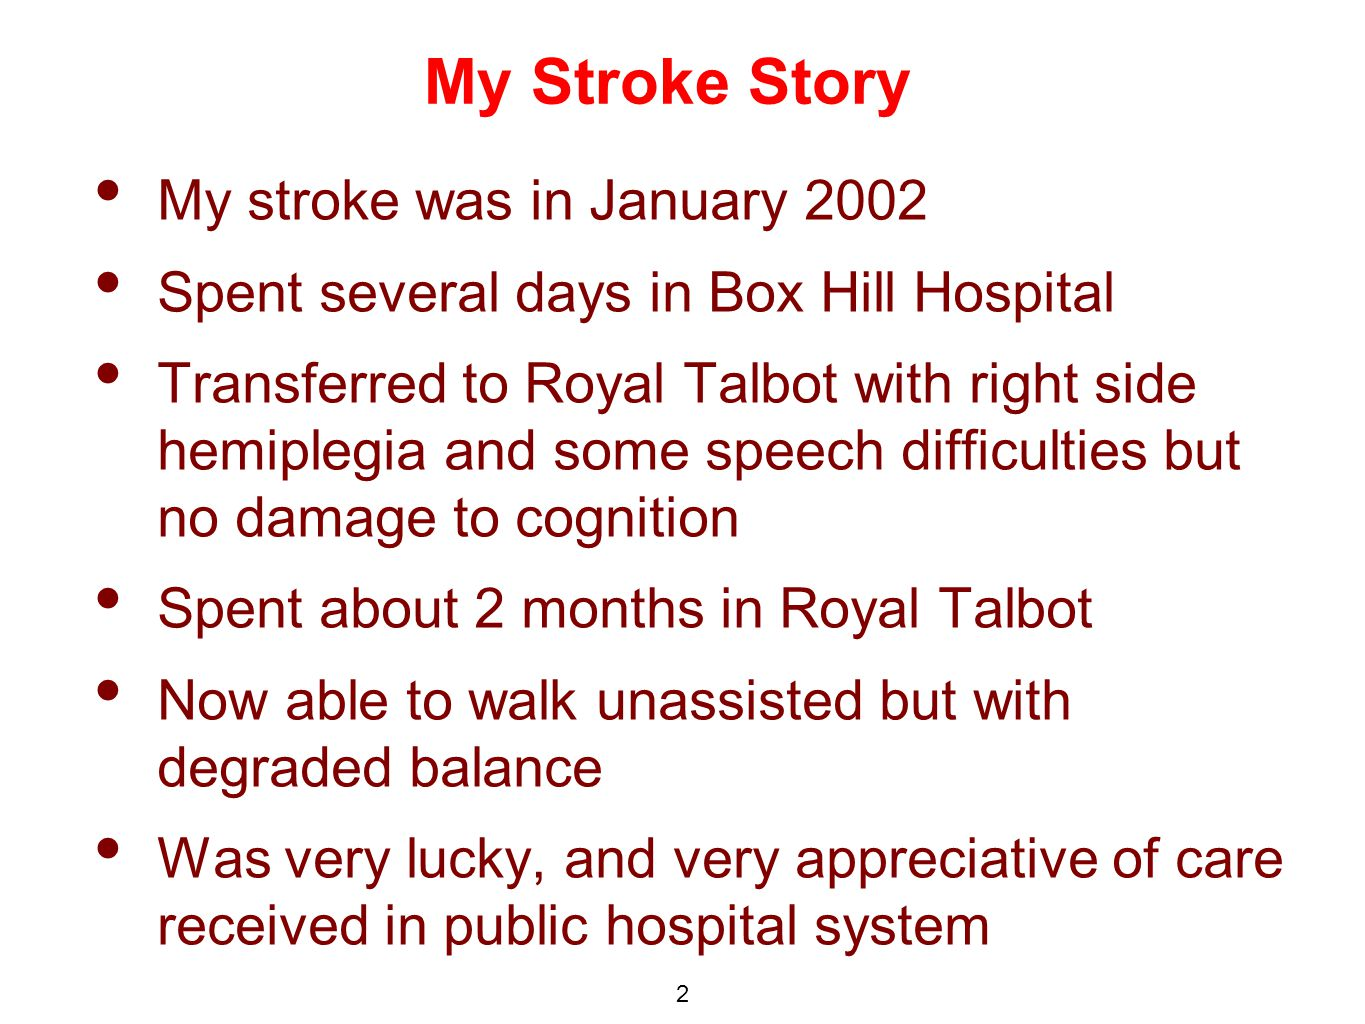 My Stroke Story My stroke was in January 2002 Spent several days in Box Hill Hospital Transferred to Royal Talbot with right side hemiplegia and some speech difficulties but no damage to cognition Spent about 2 months in Royal Talbot Now able to walk unassisted but with degraded balance Was very lucky, and very appreciative of care received in public hospital system 2